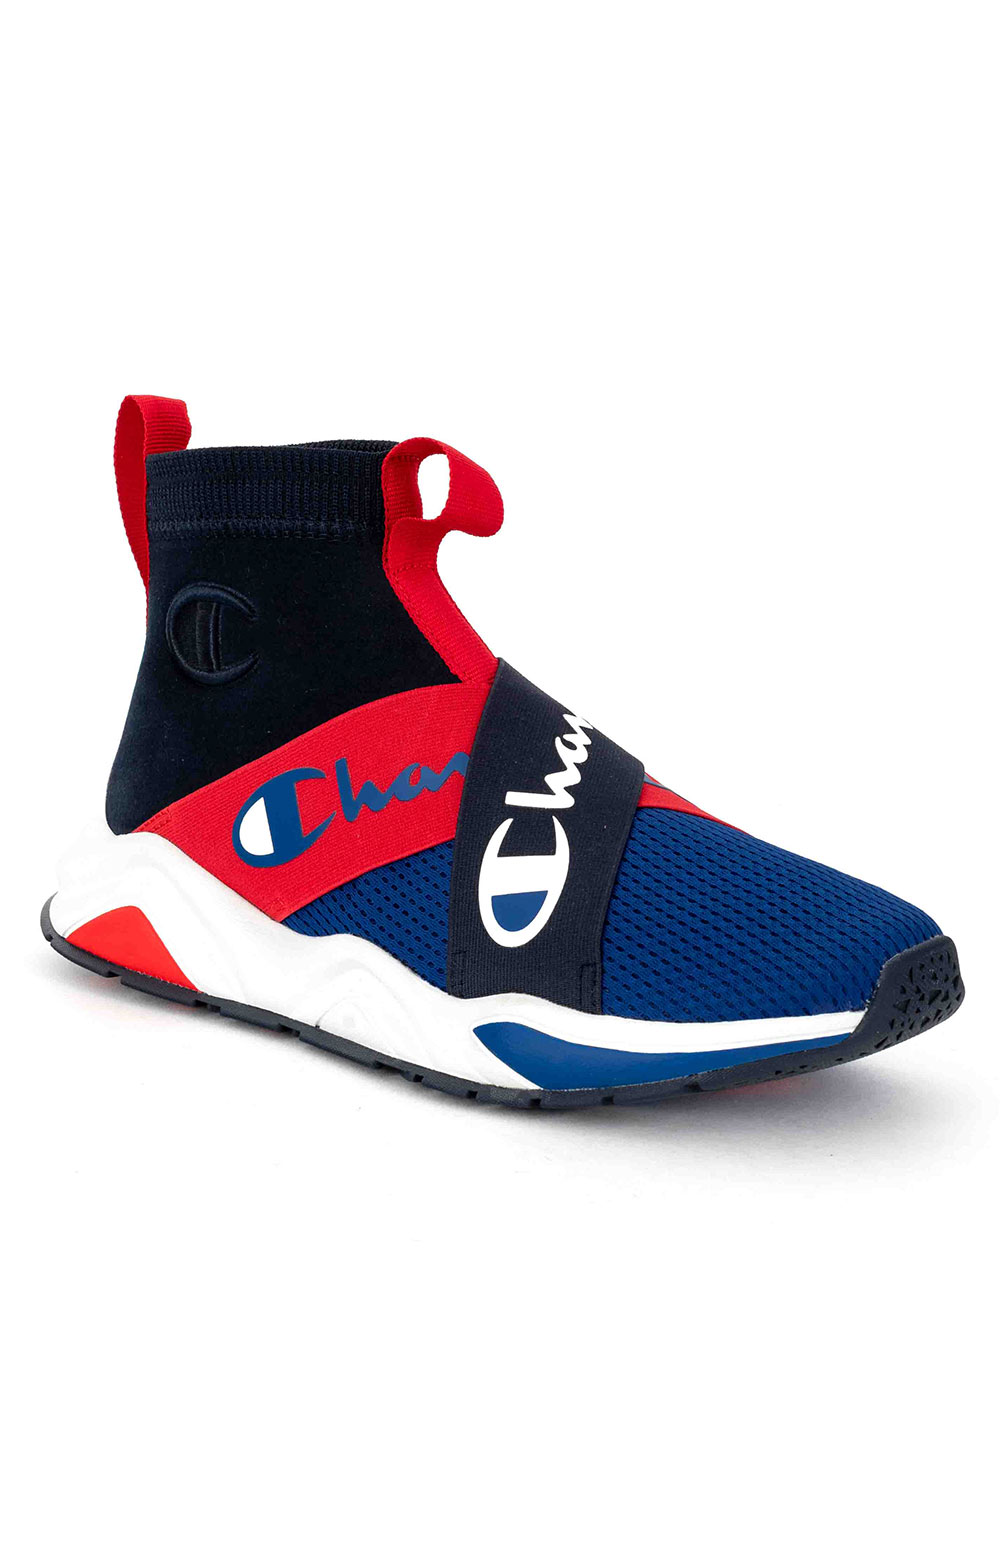 Rally Pro Shoes - Navy/Surf The Web 3